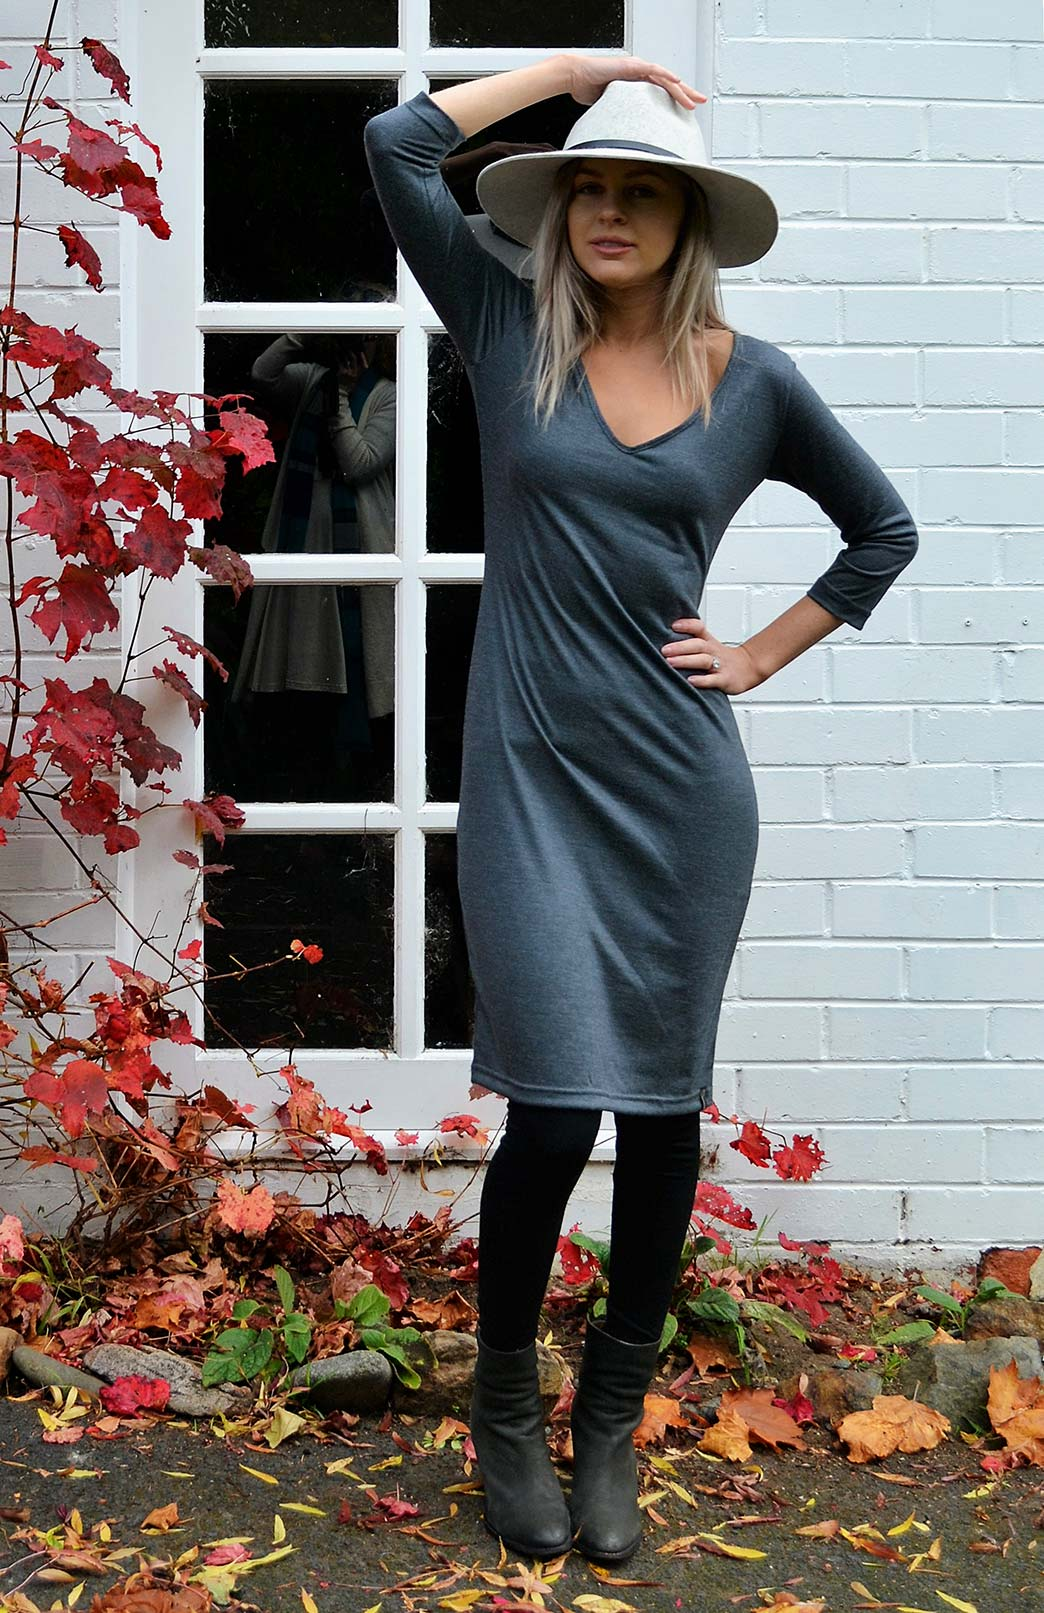 V-Neck 3/4 Sleeve Dress in Charcoal